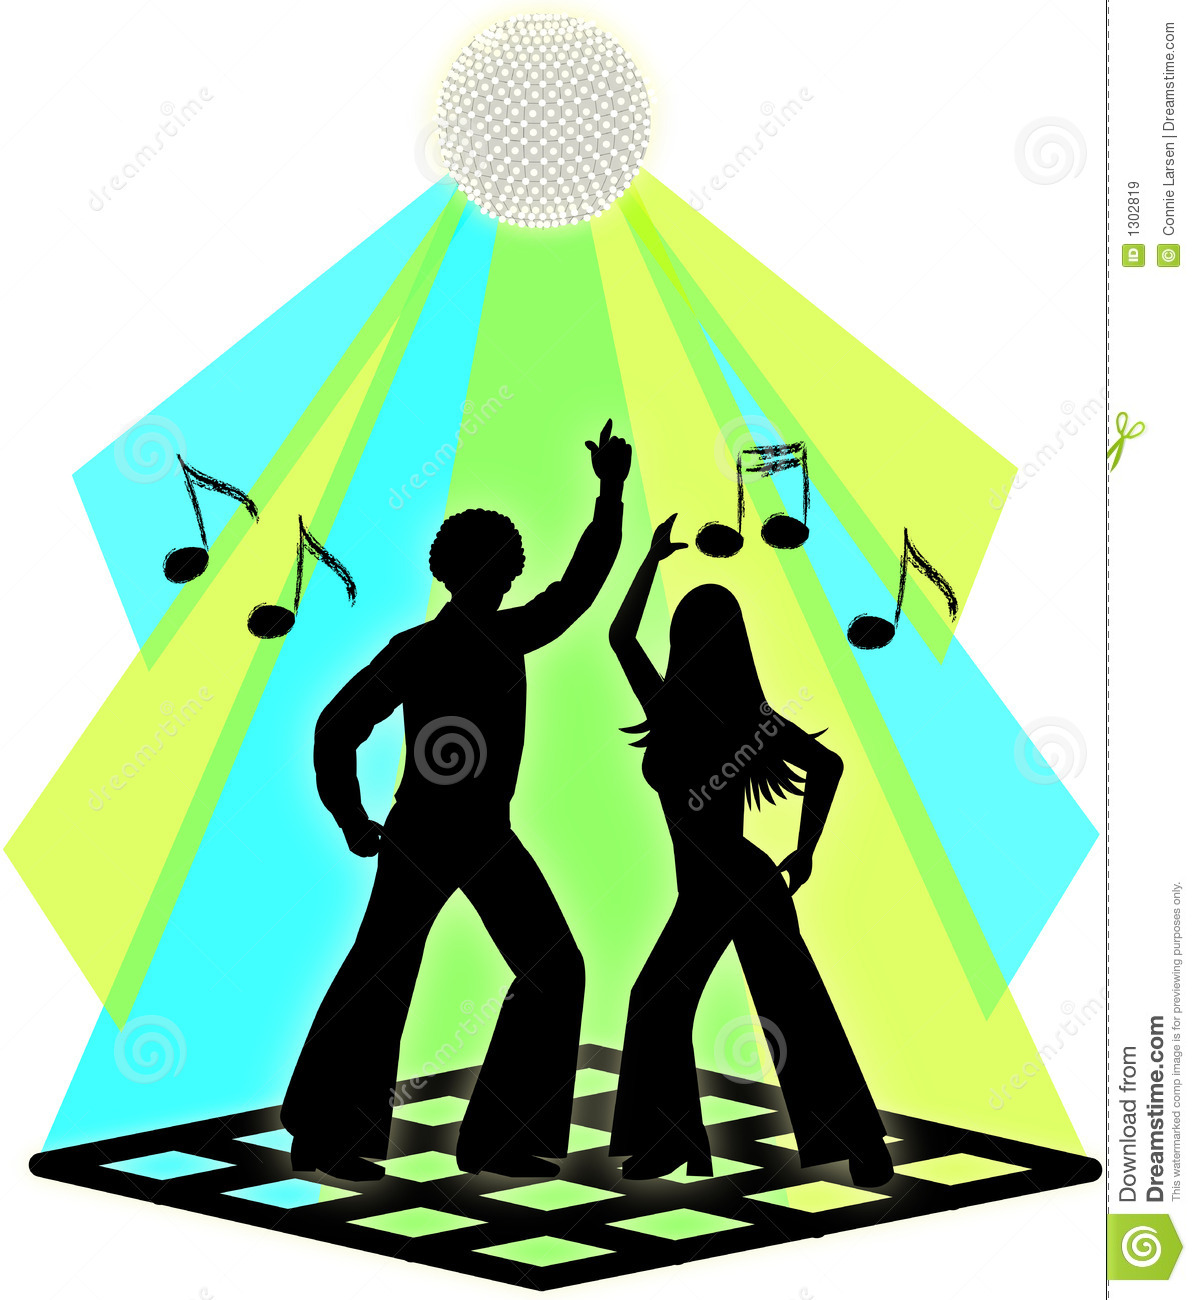 Couples de danse de disco images libres de droits image - Type de danse de salon ...